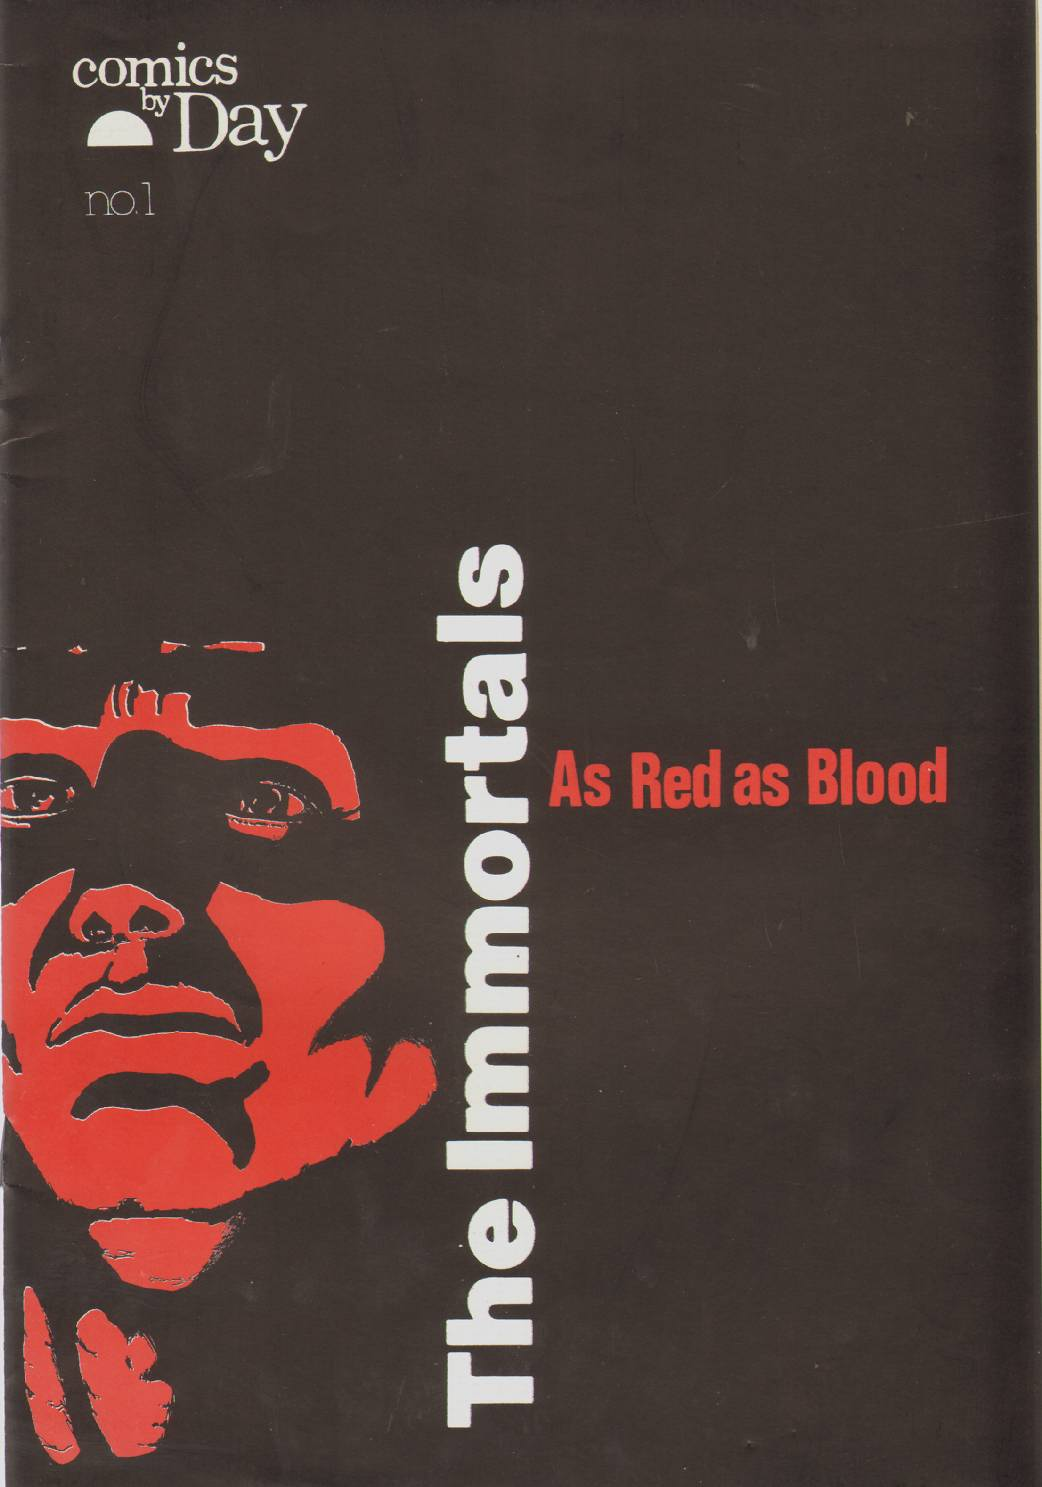 THE IMMORTALS AS RED AS BLOOD NO. 1, Day, Brant